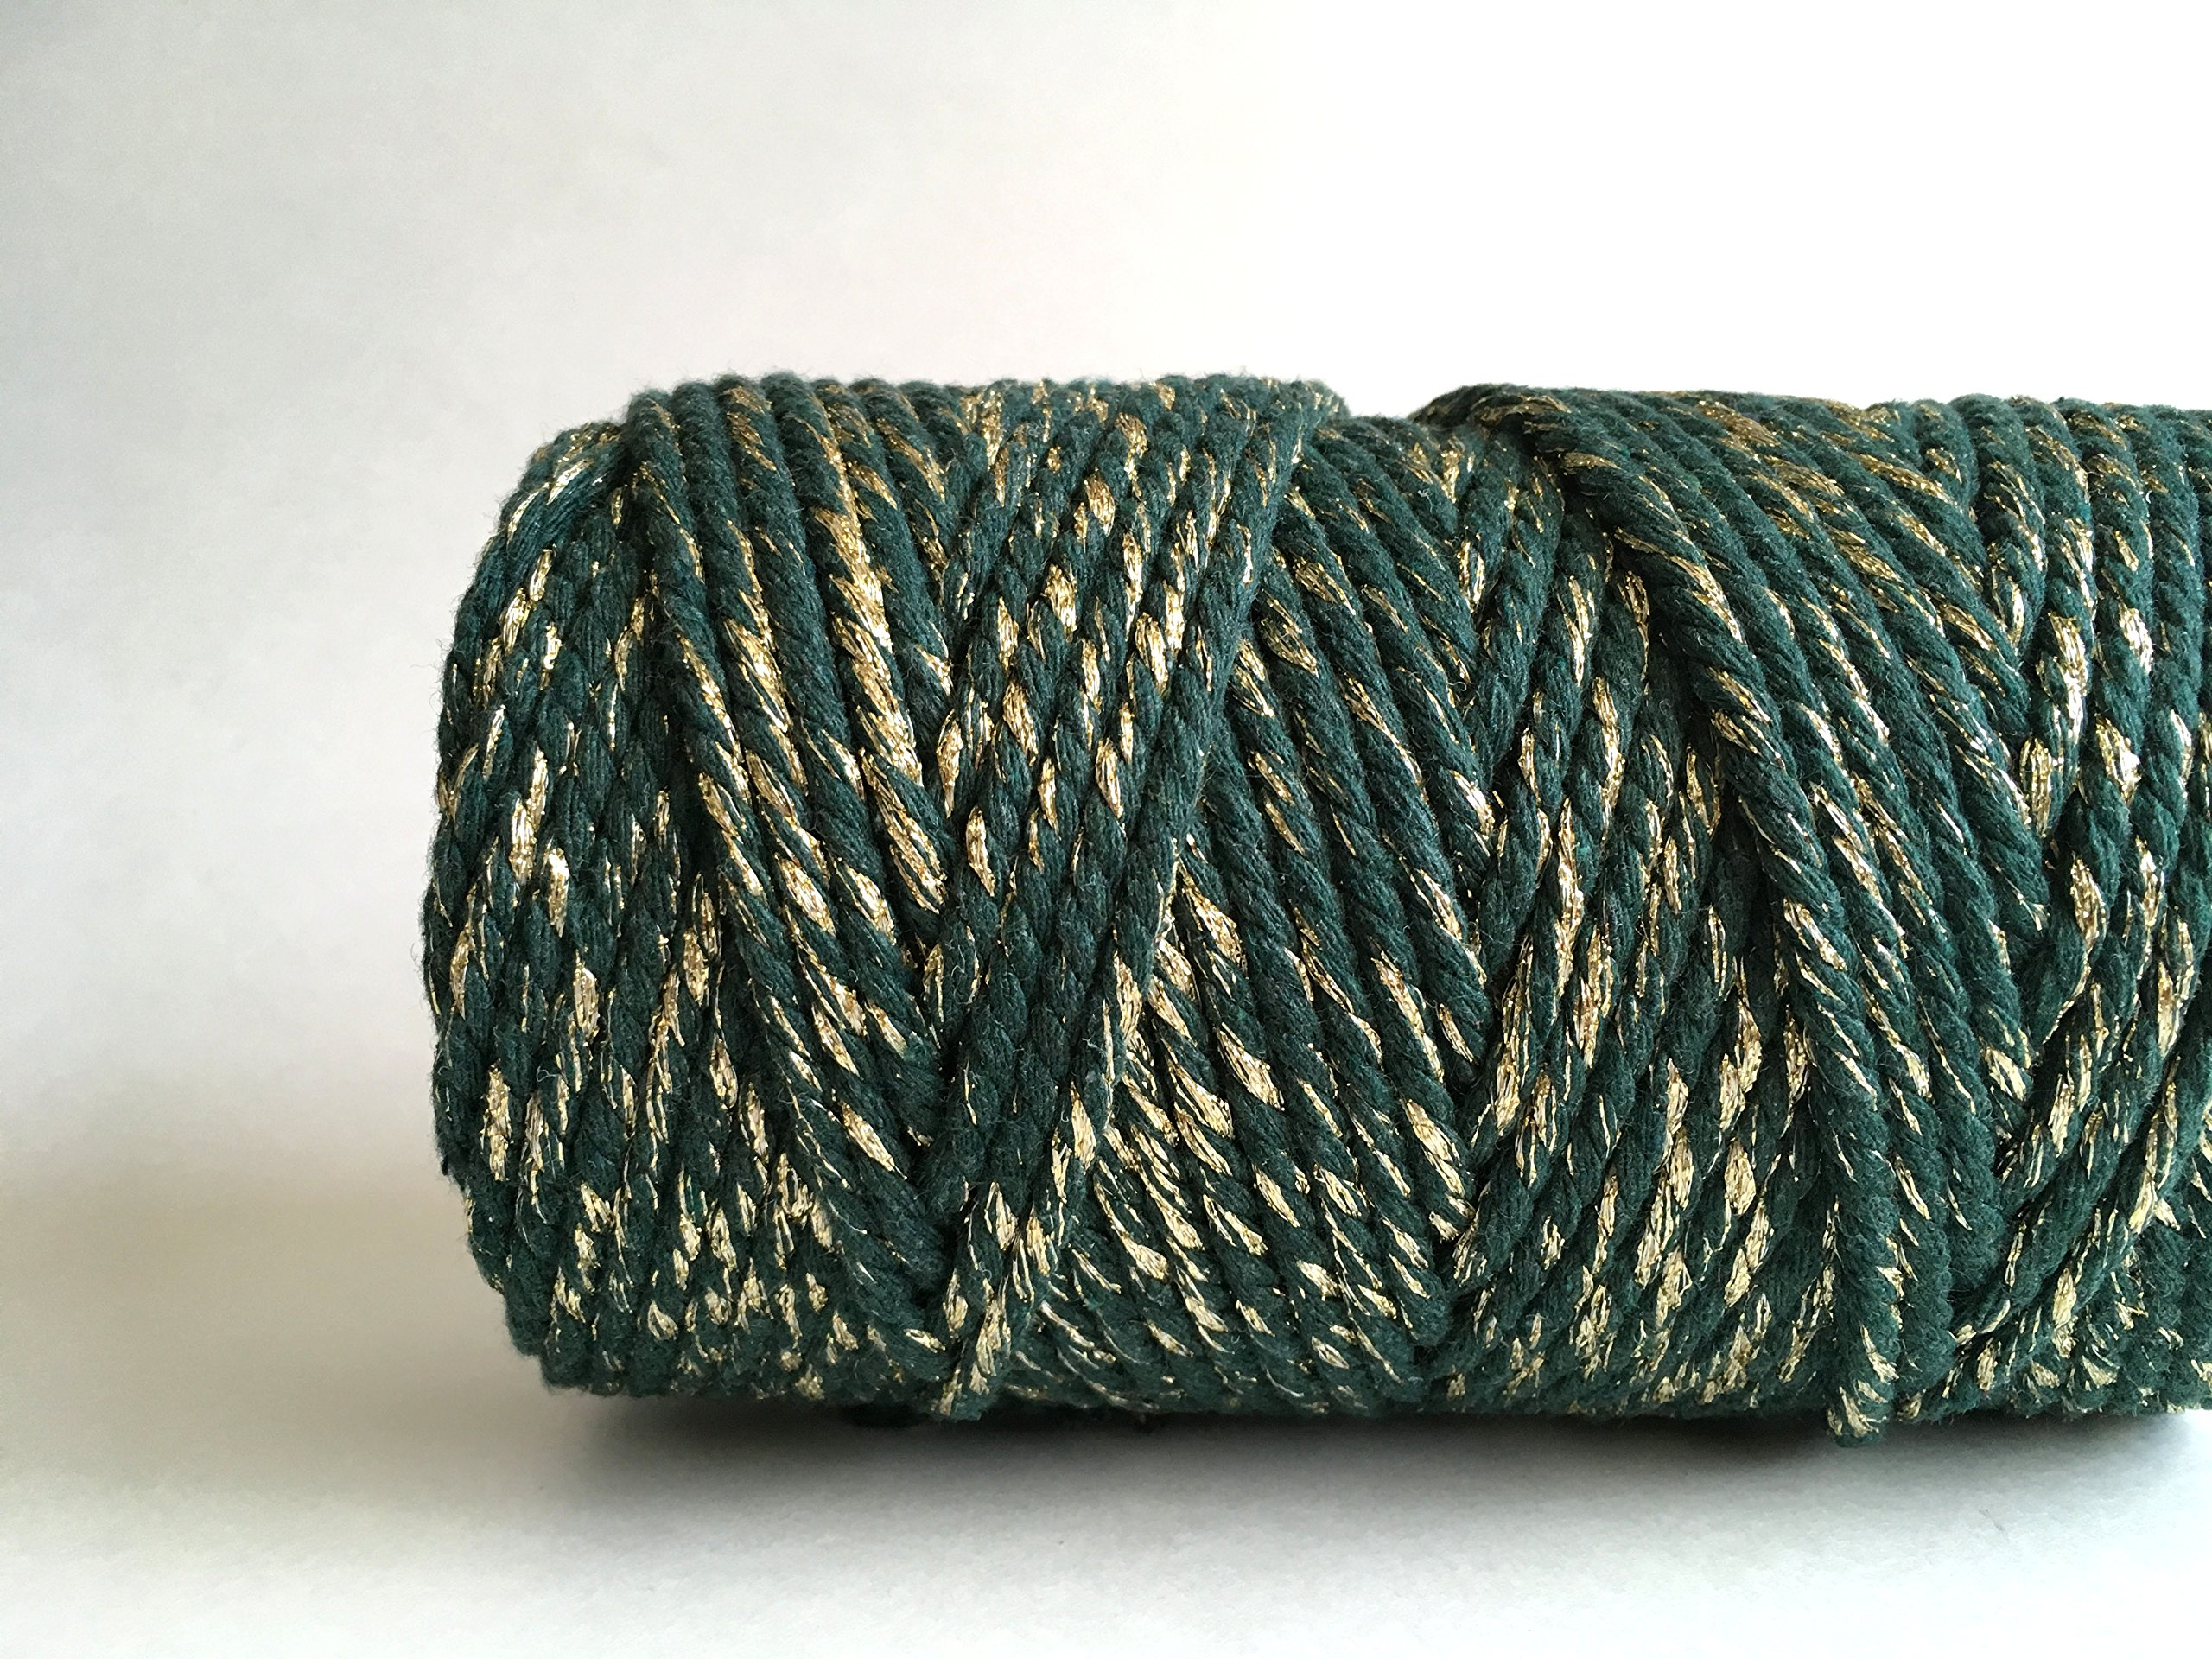 Emerald Green and Gold Macrame Cord / 4mm 3 Strand Cotton Sparkle Fiber Art Rope by Rock Mountain Co (Image #2)